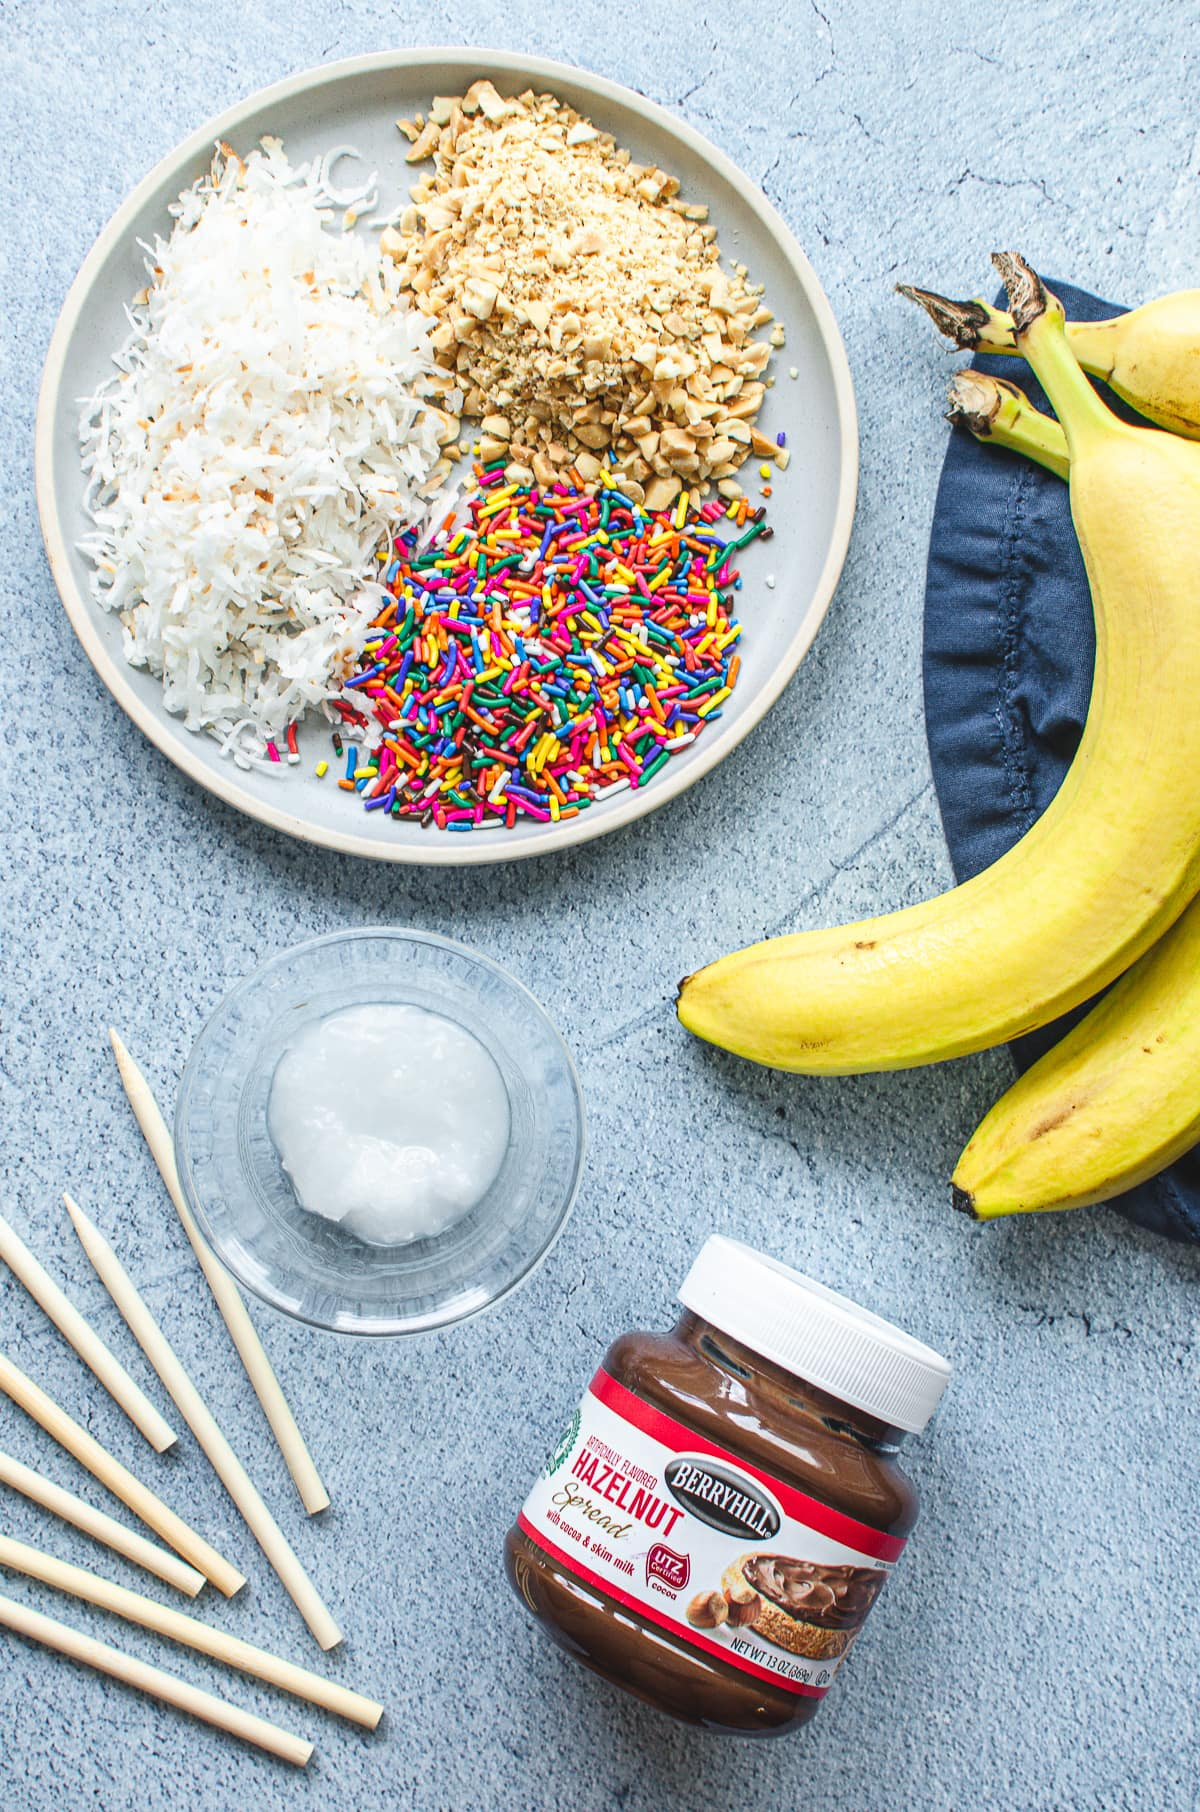 A plate of sprinkles, nuts and coconut flakes with bananas, Nutella, coconut oil, and wooden sticks on the side.